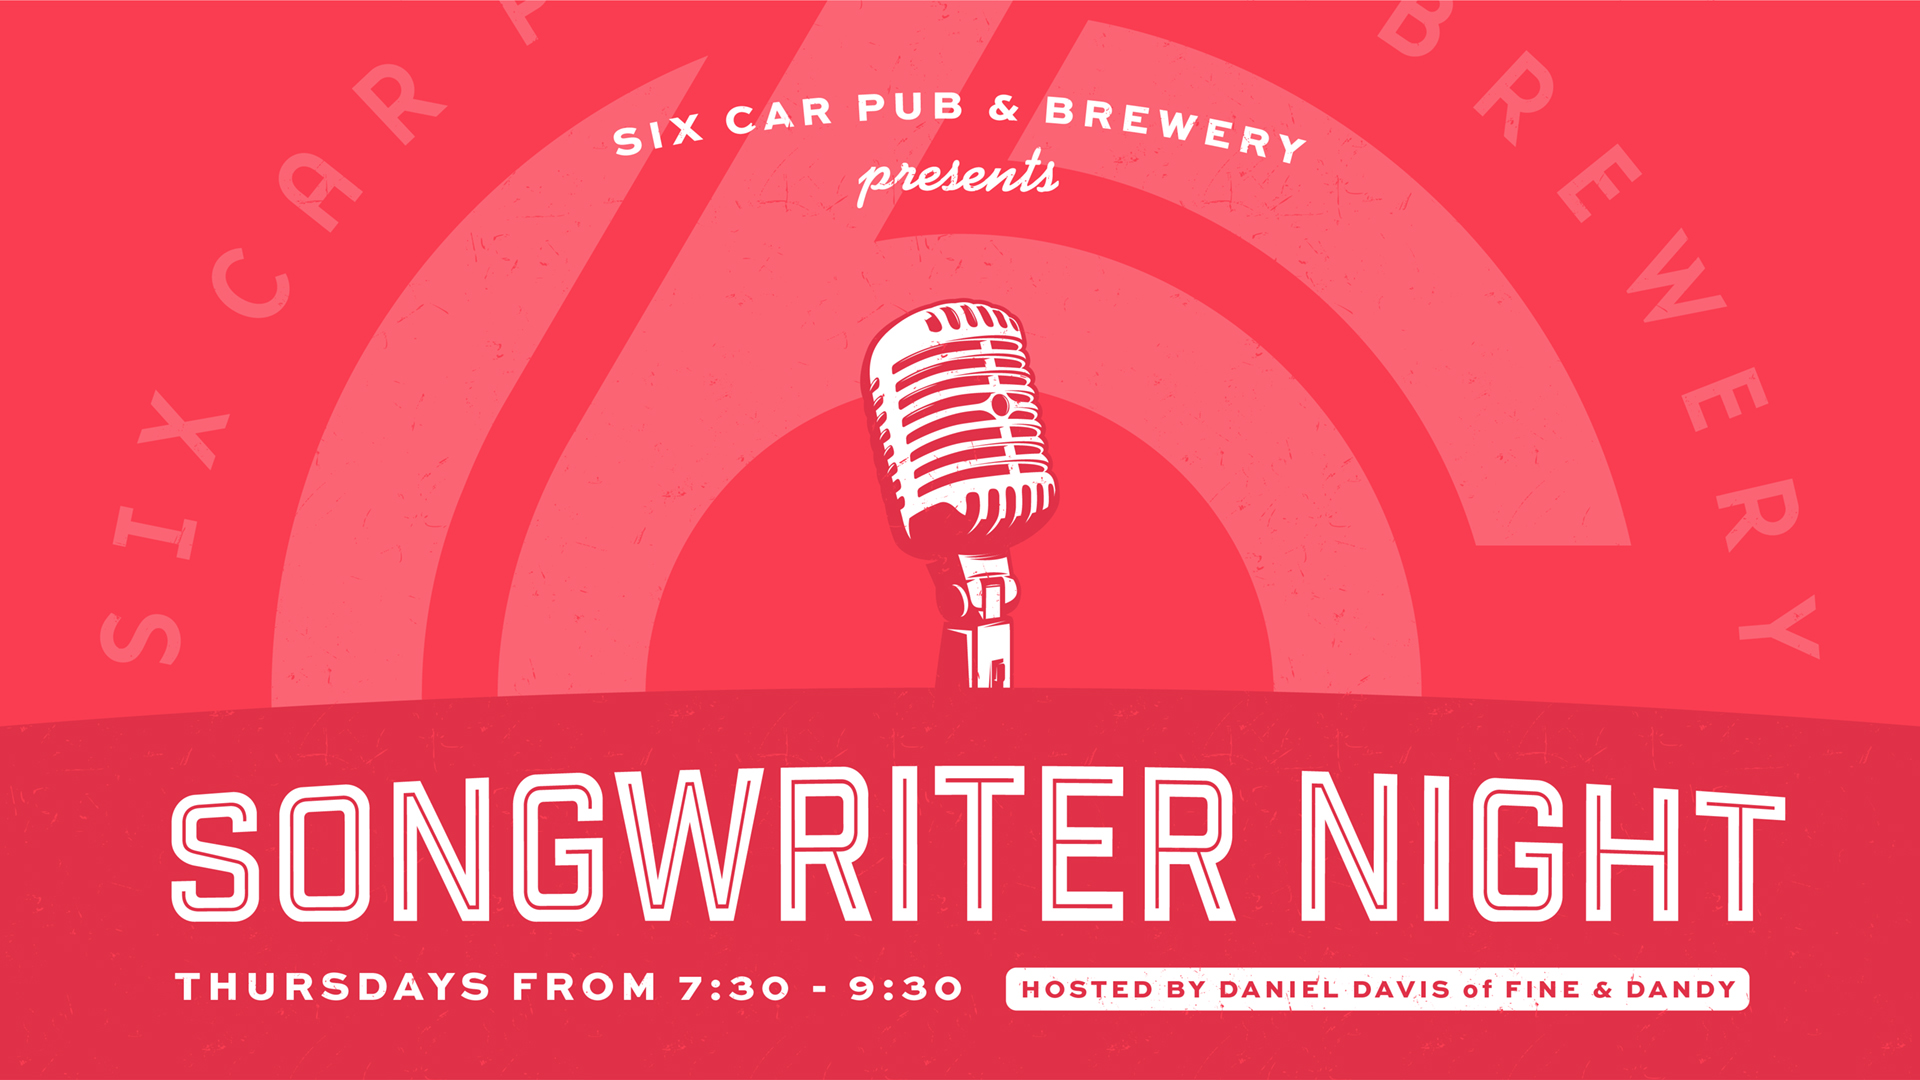 SongwriterNight-Event-new@150x-100.jpg